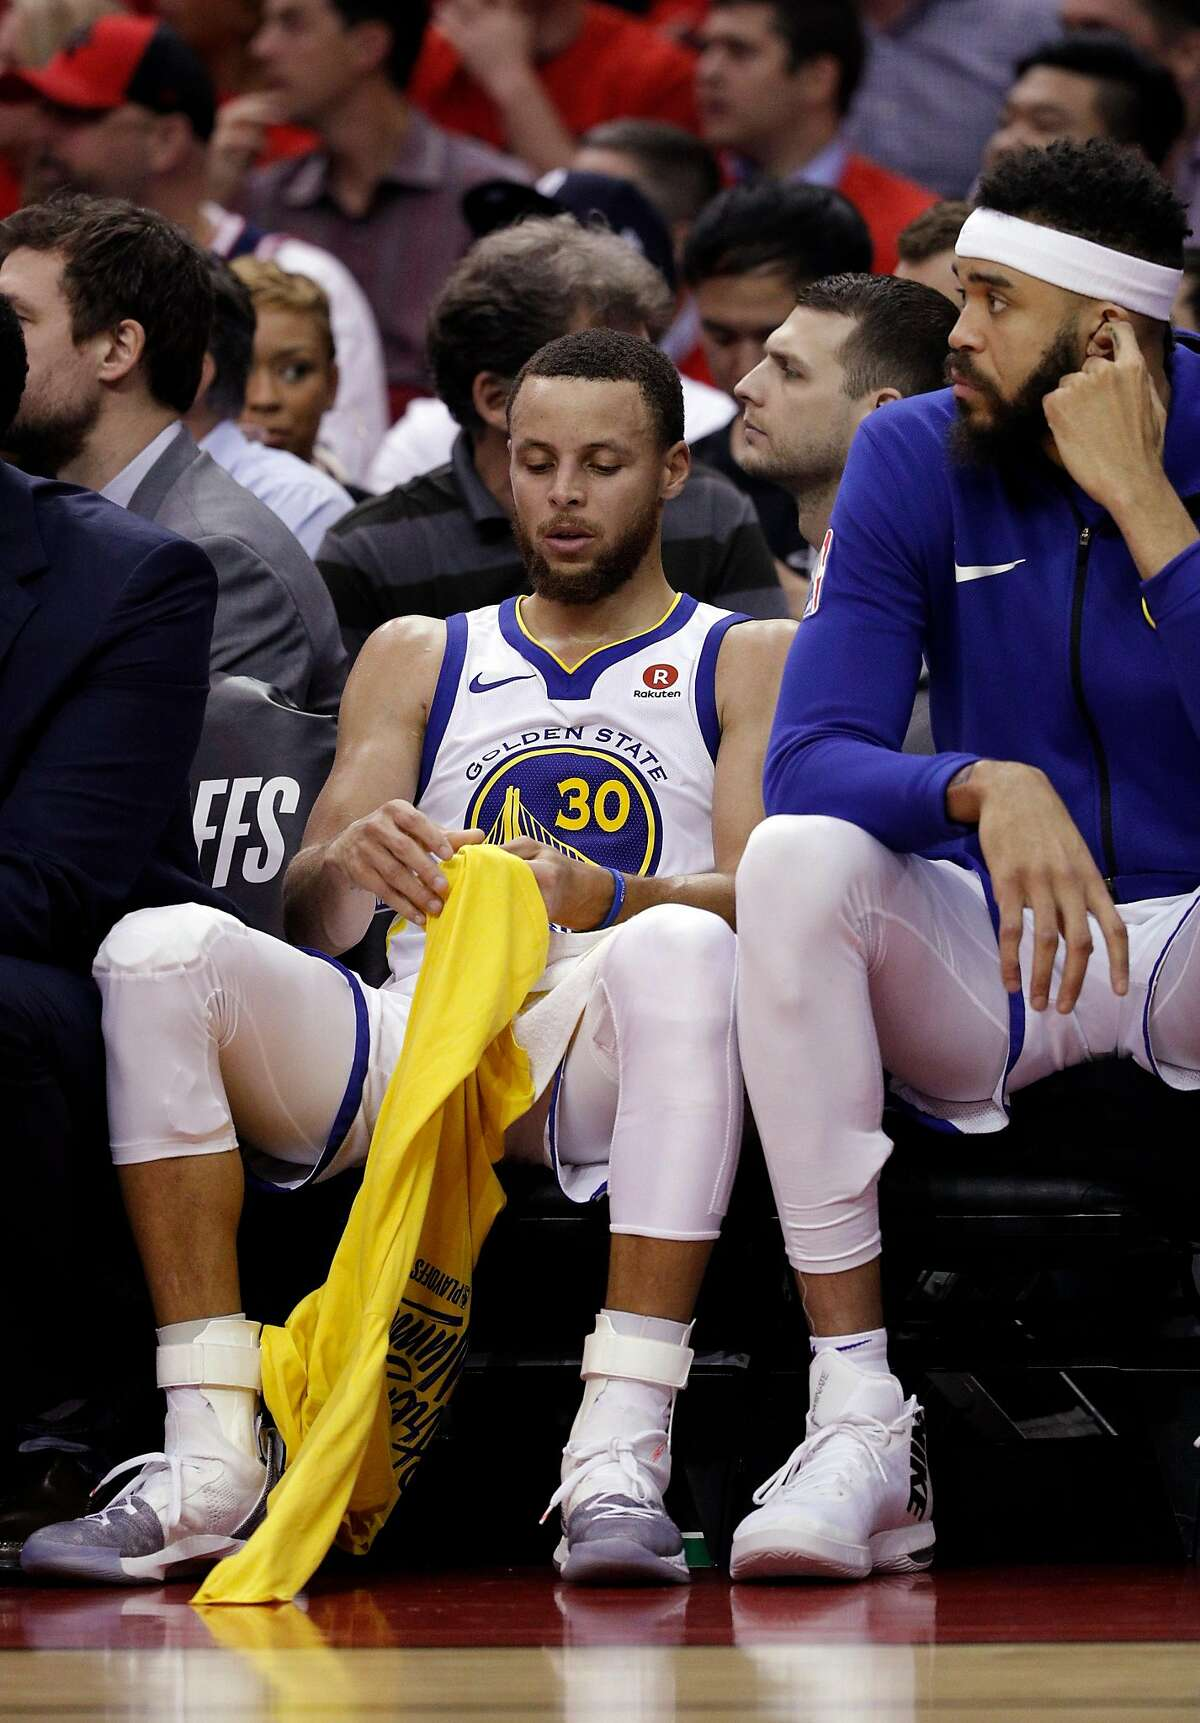 Stephen Curry (30) sits on the bench in the second half as the Golden State Warriors played by the Houston Rockets in Game 2 of the Western Conference Finals at Toyota Center in Houston, Texas, on Wednesday, May 16, 2018. The Rockets won 127-105.